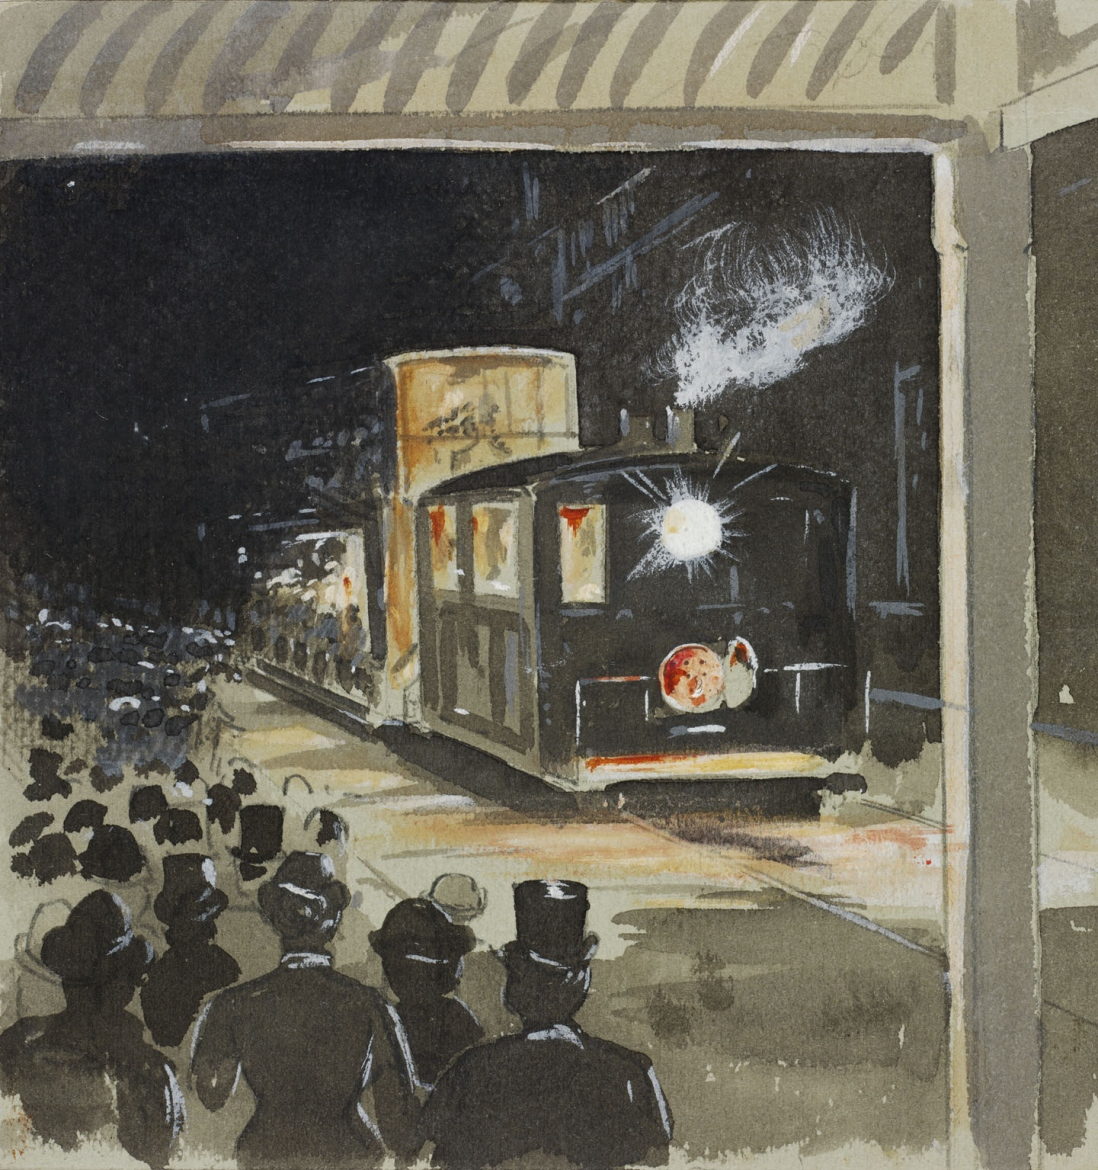 Illustration of a steam tram light up at night passing along a street crowded with onlookers on the footpaths.